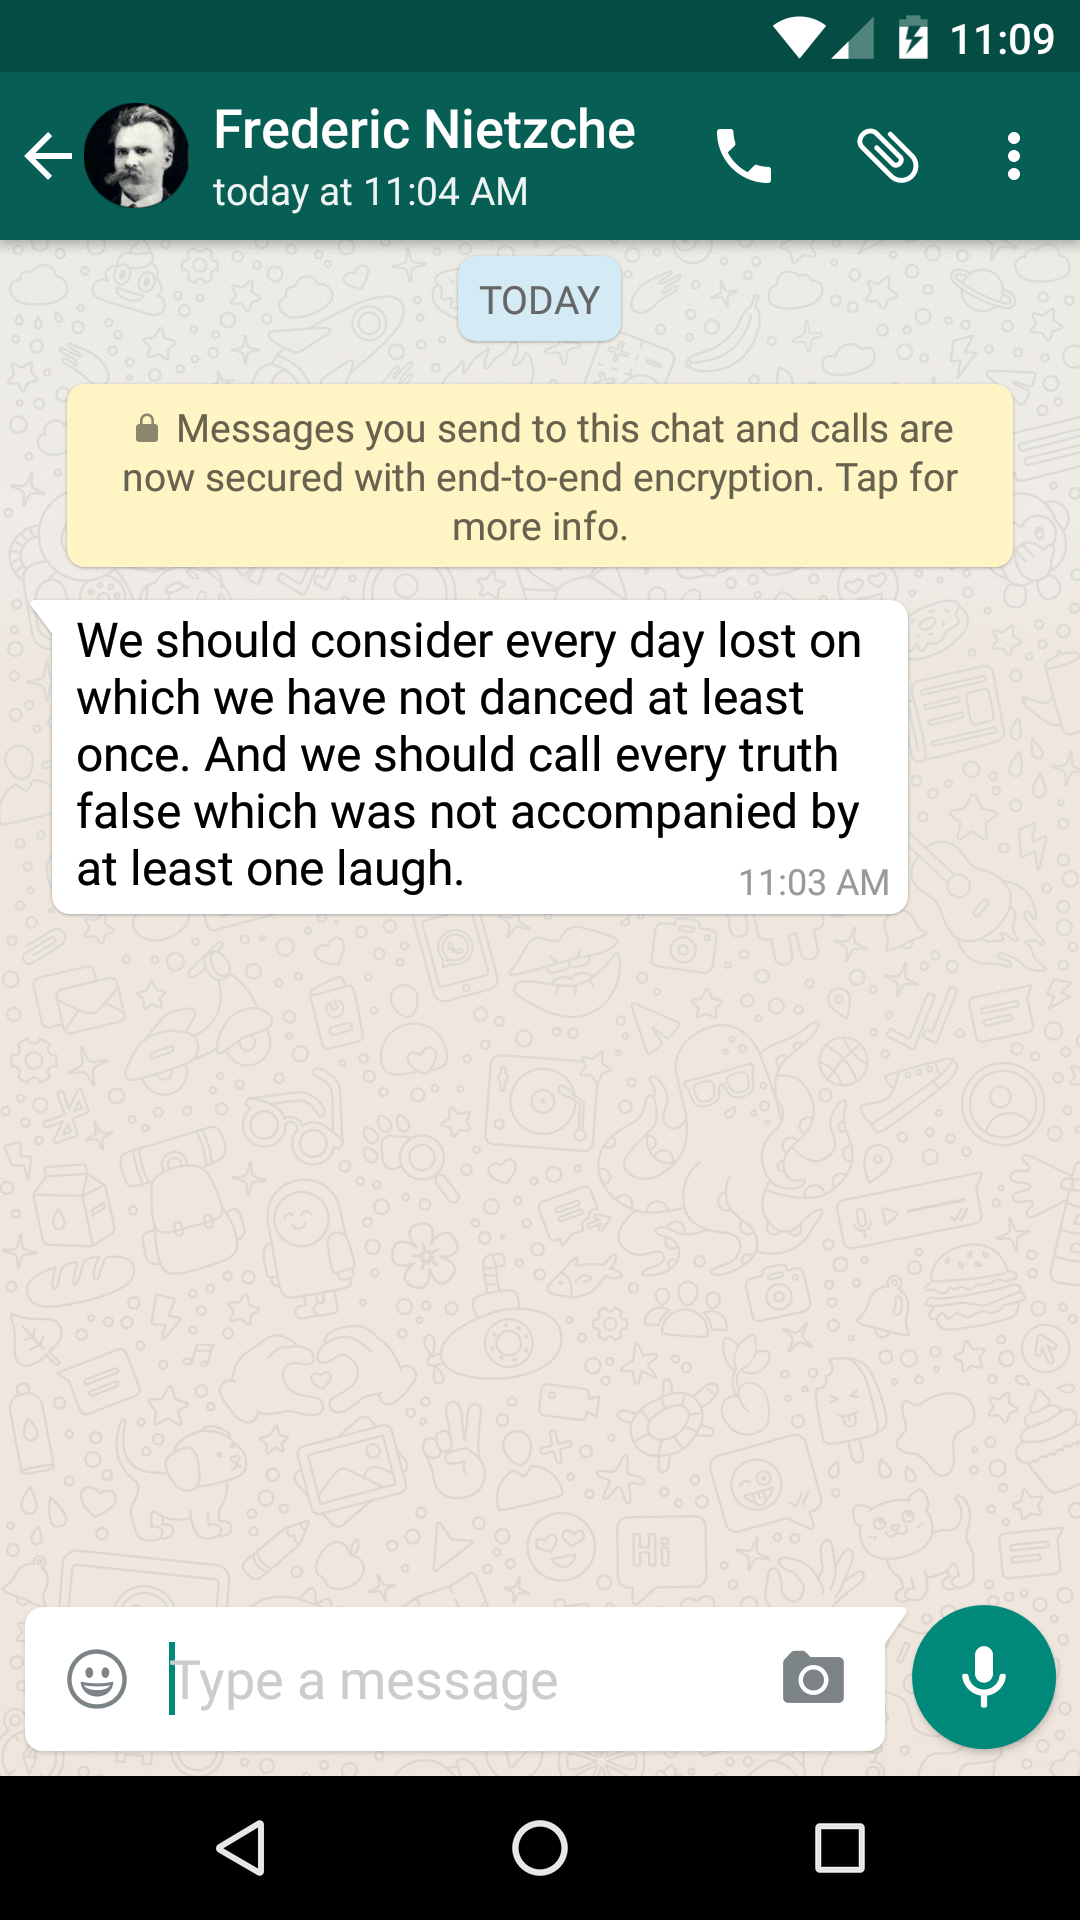 WhatsApp encryption announcement message